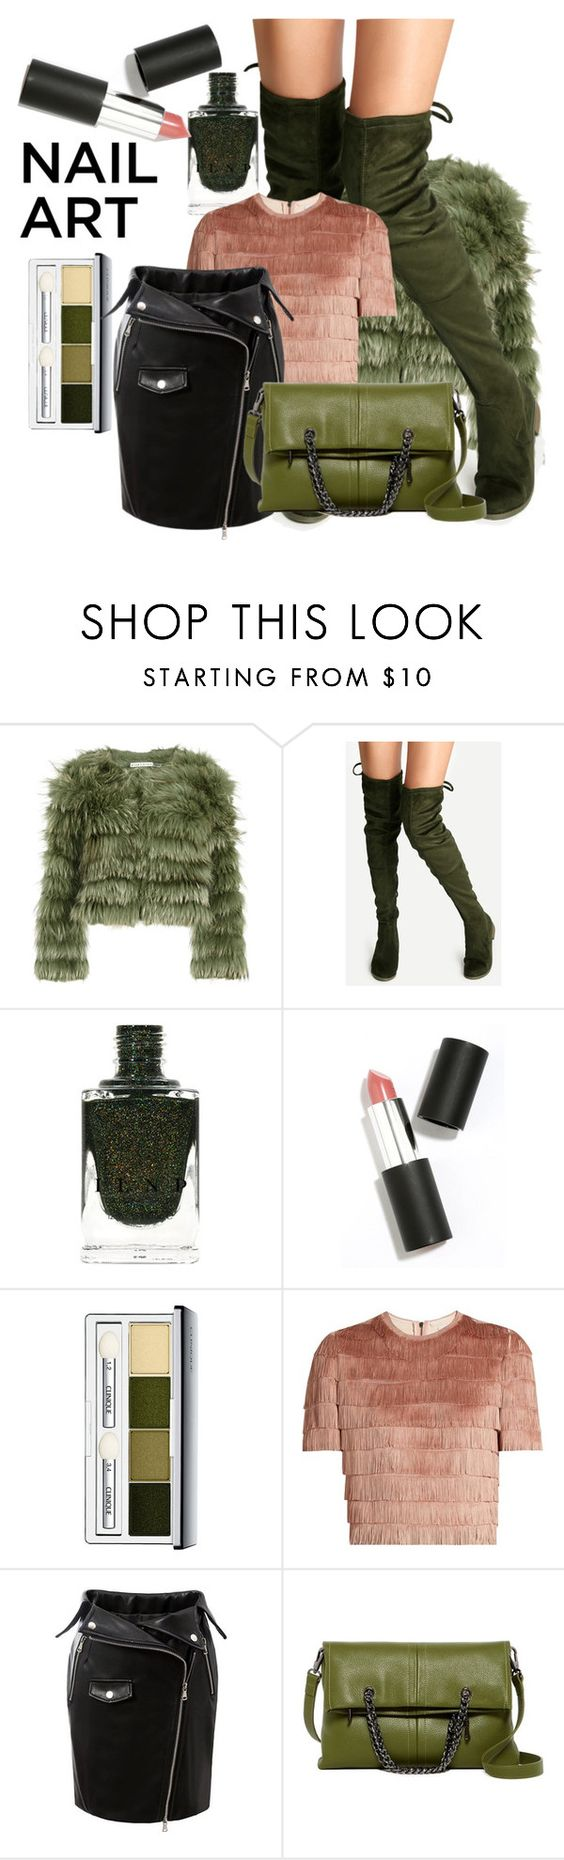 """throw, show & go"" by daincyng ❤ liked on Polyvore featuring beauty, Alice + Olivia, WithChic, Sigma, Clinique, Raey, Sorial and nailedit"